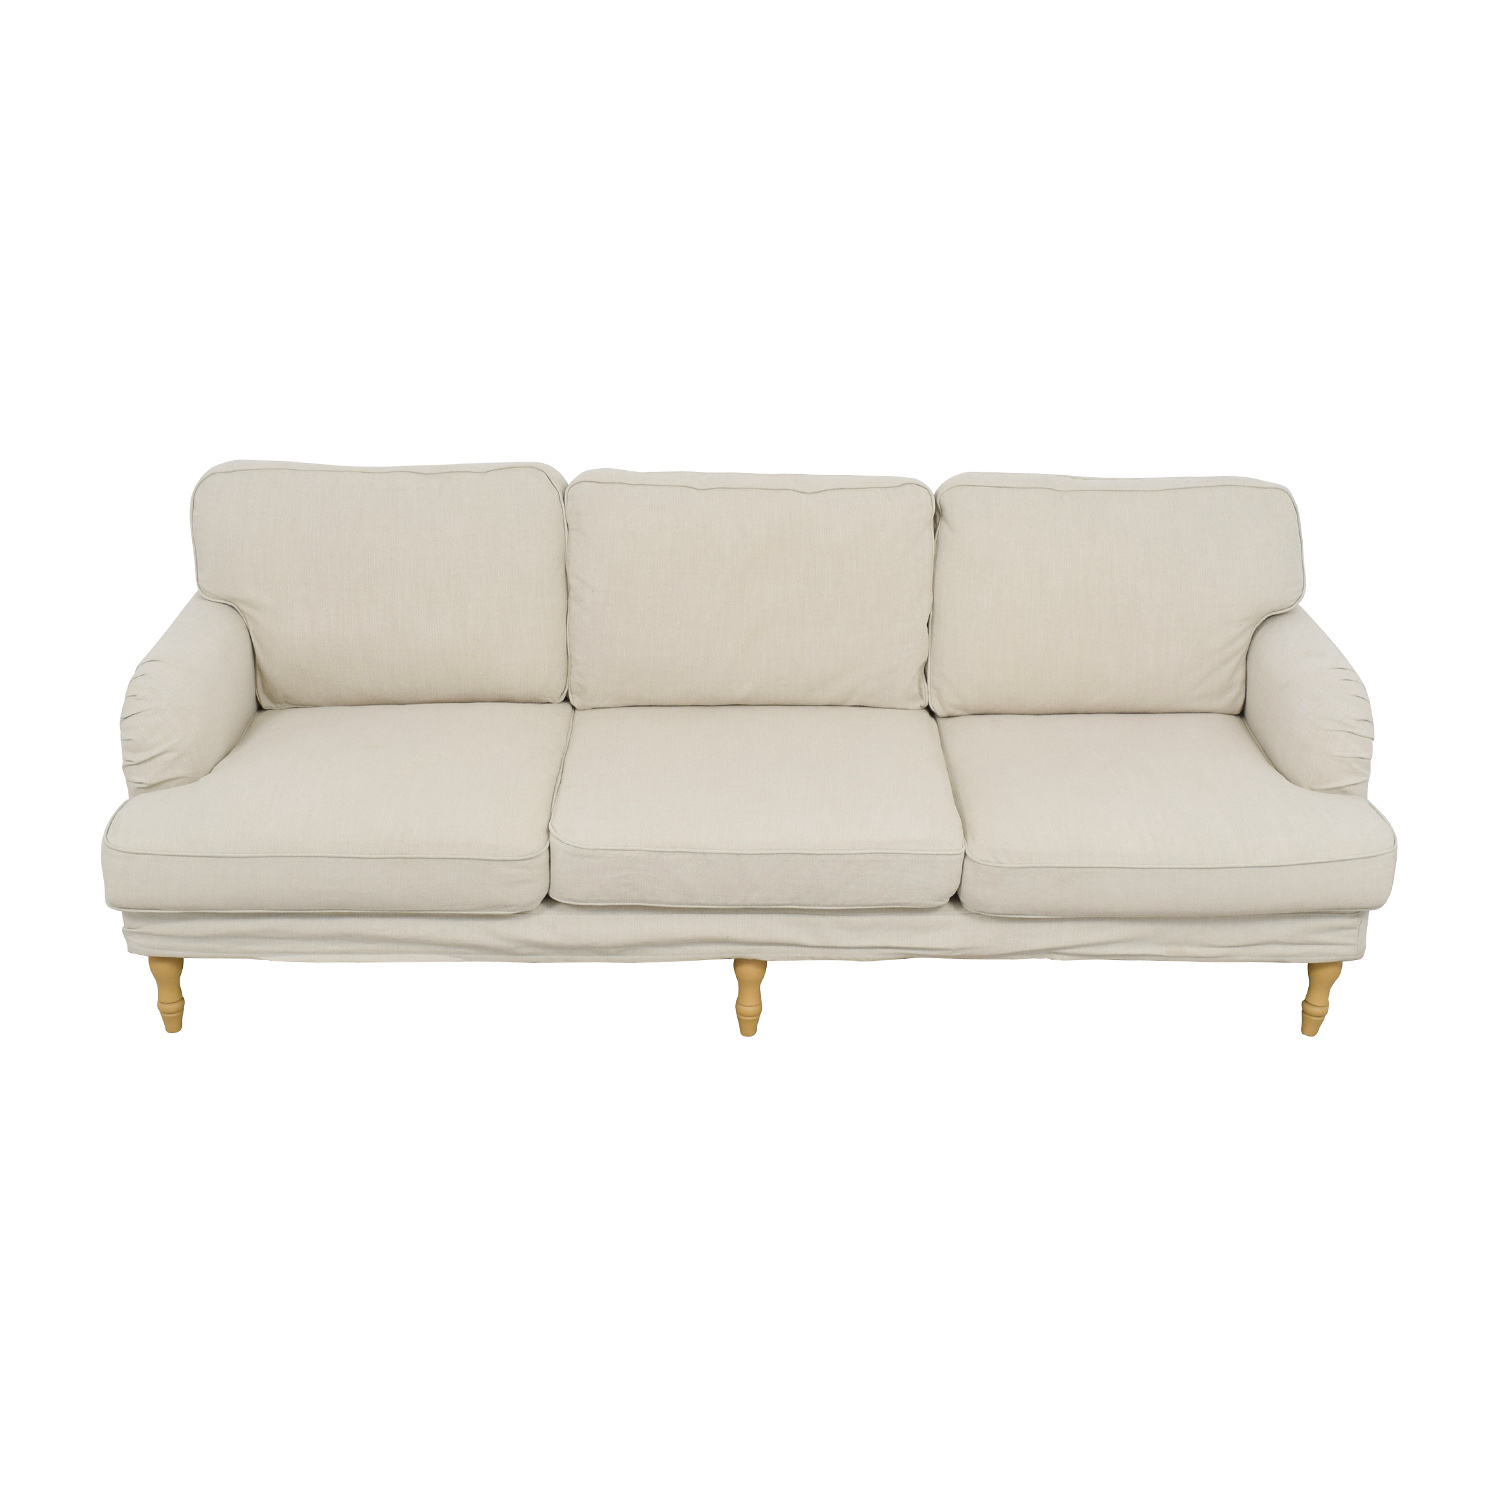 IKEA IKEA Beige Sofa for sale